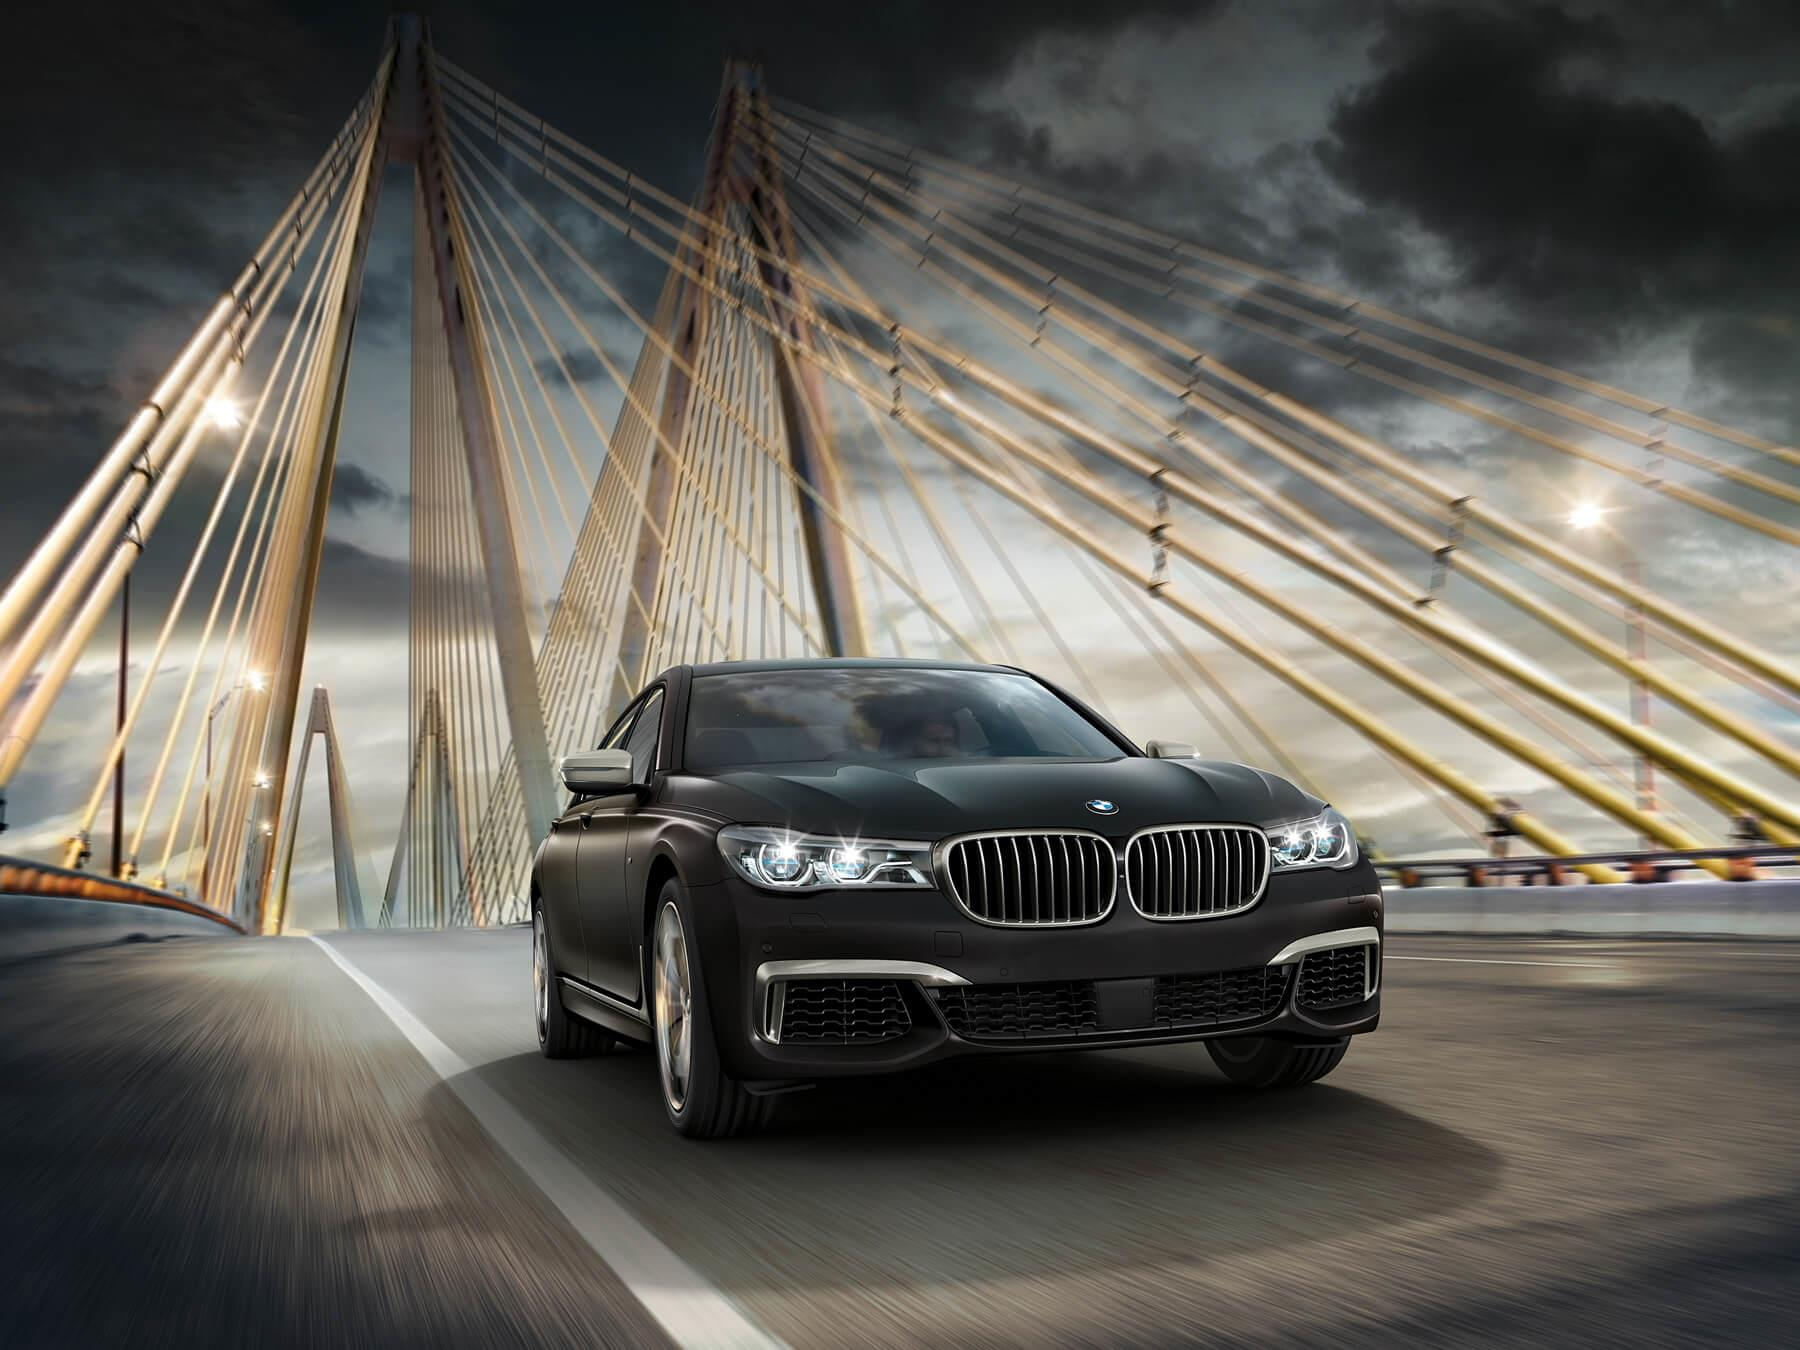 Black BMW car driving in the city freeway